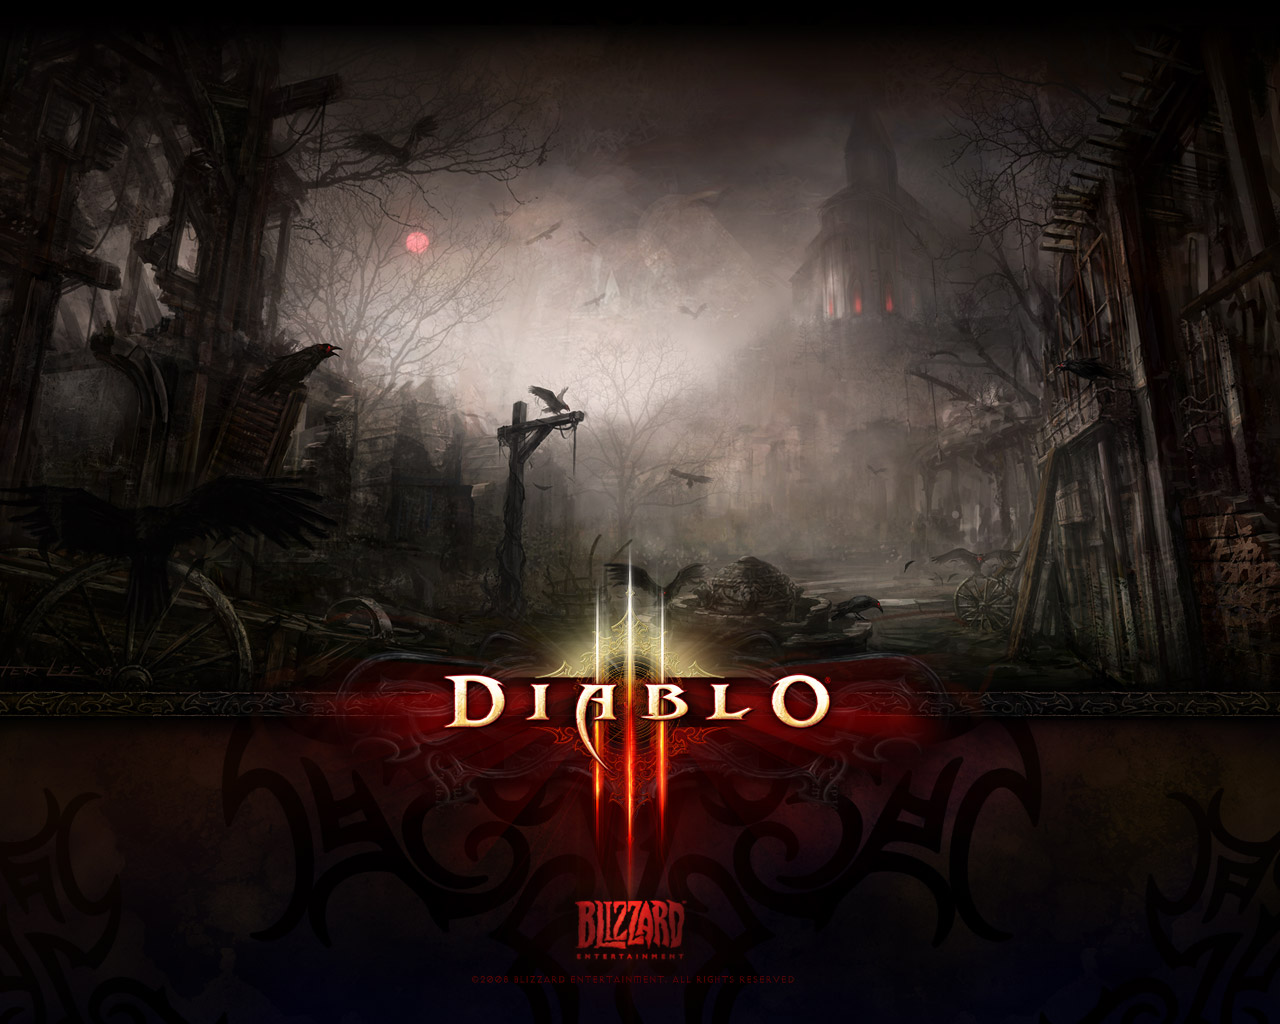 Diablo 3 Wallpapers - PC Game Wallpapers #2